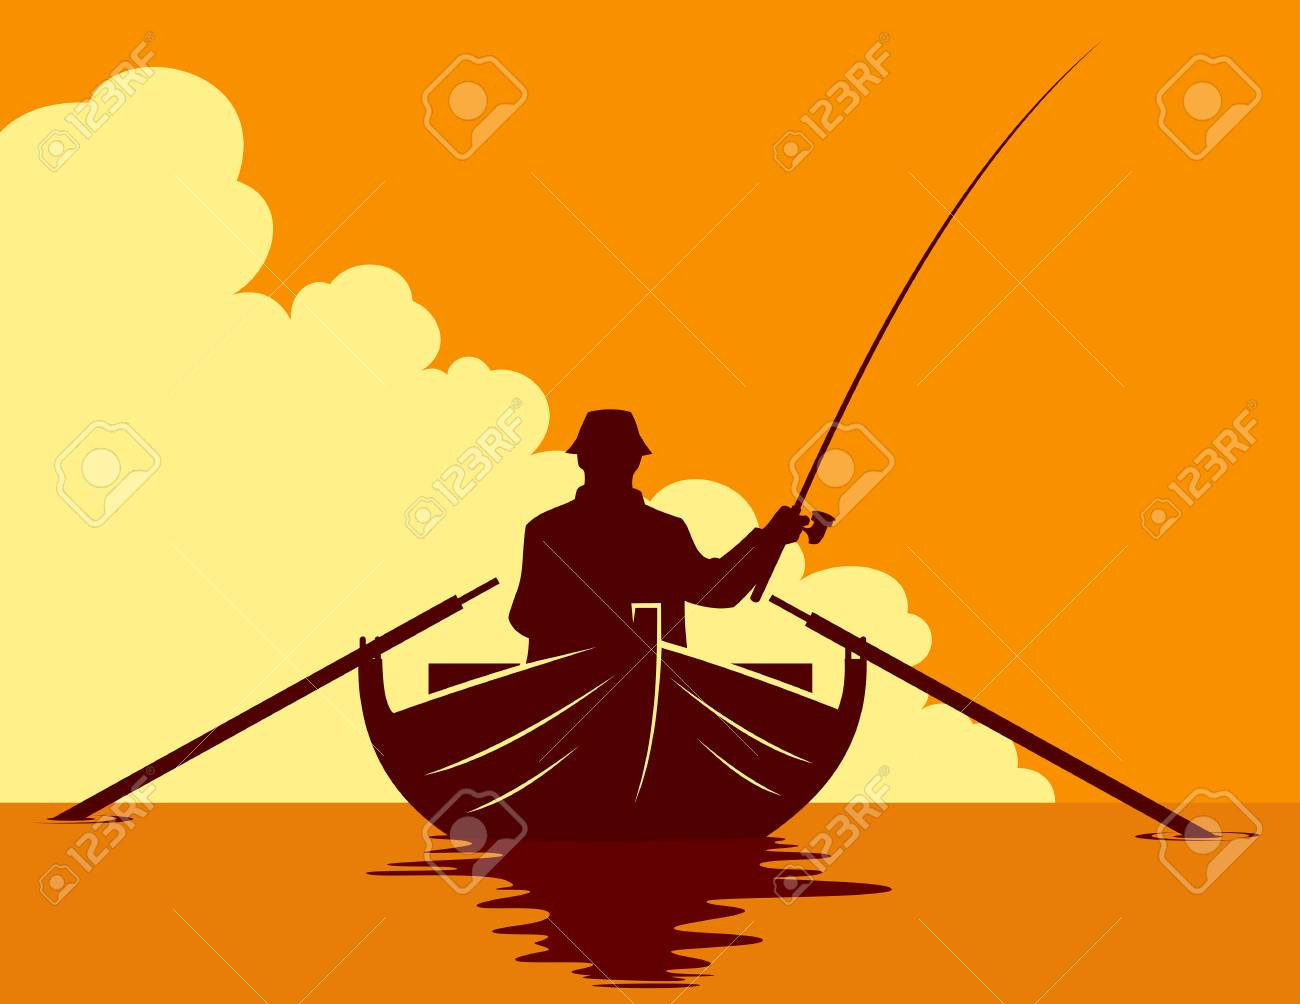 Fisherman In A Boat Silhouette On Sunset Background Vector Illustration Royalty Free Cliparts Vectors And Stock Illustration Image 103597304